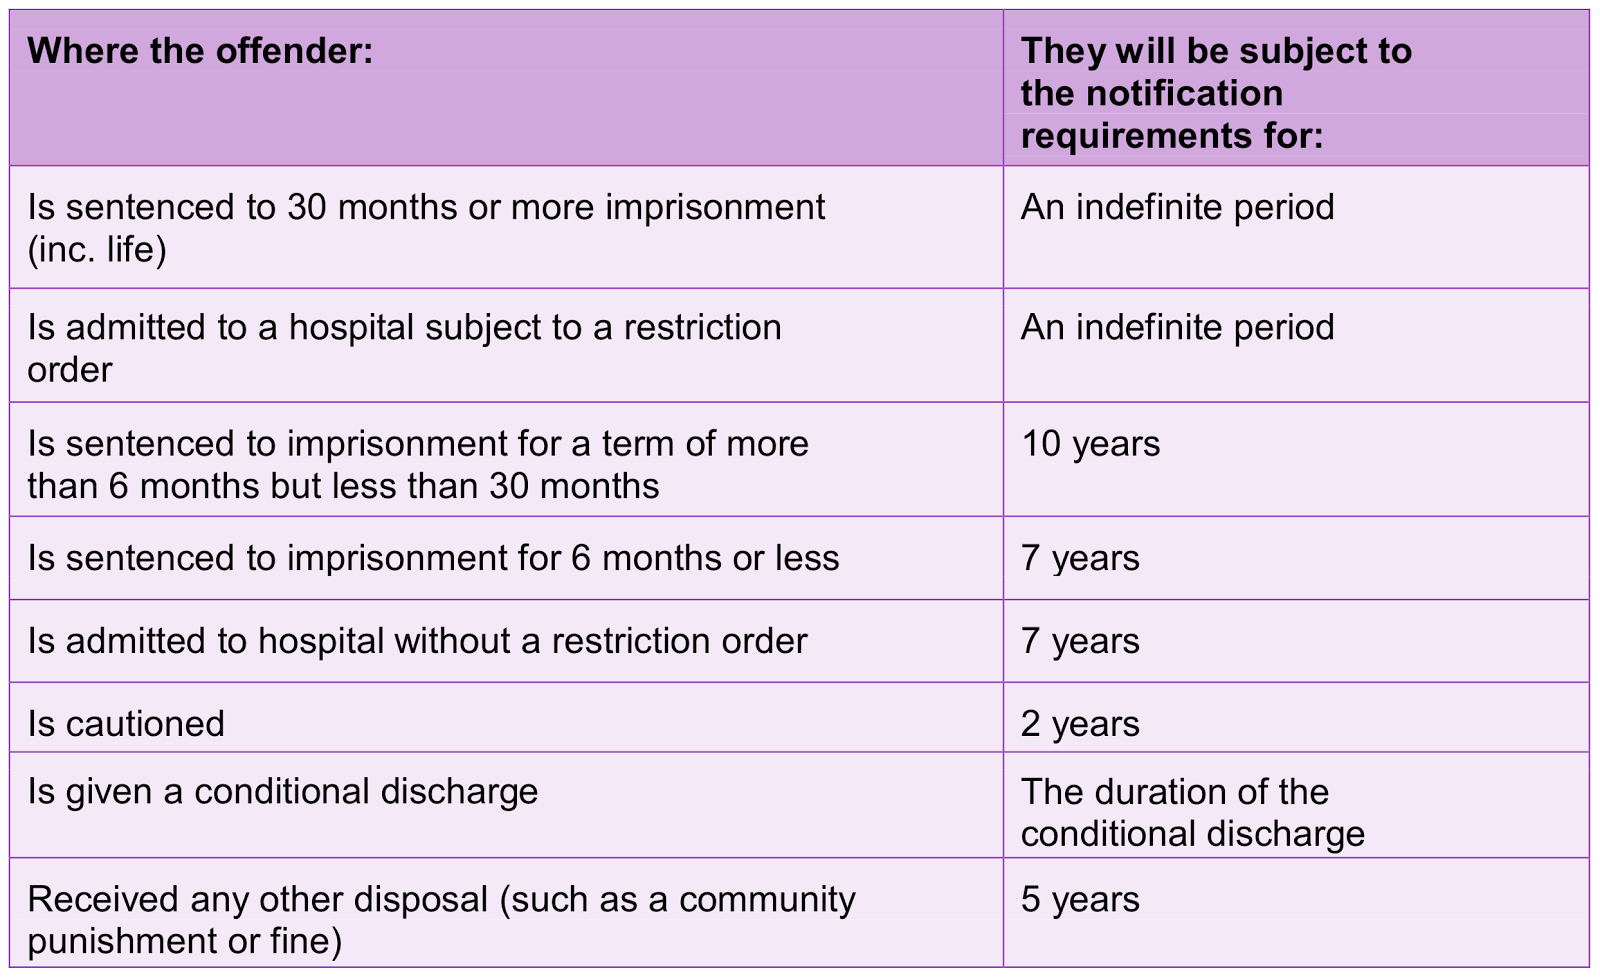 sex offender notification requirements table